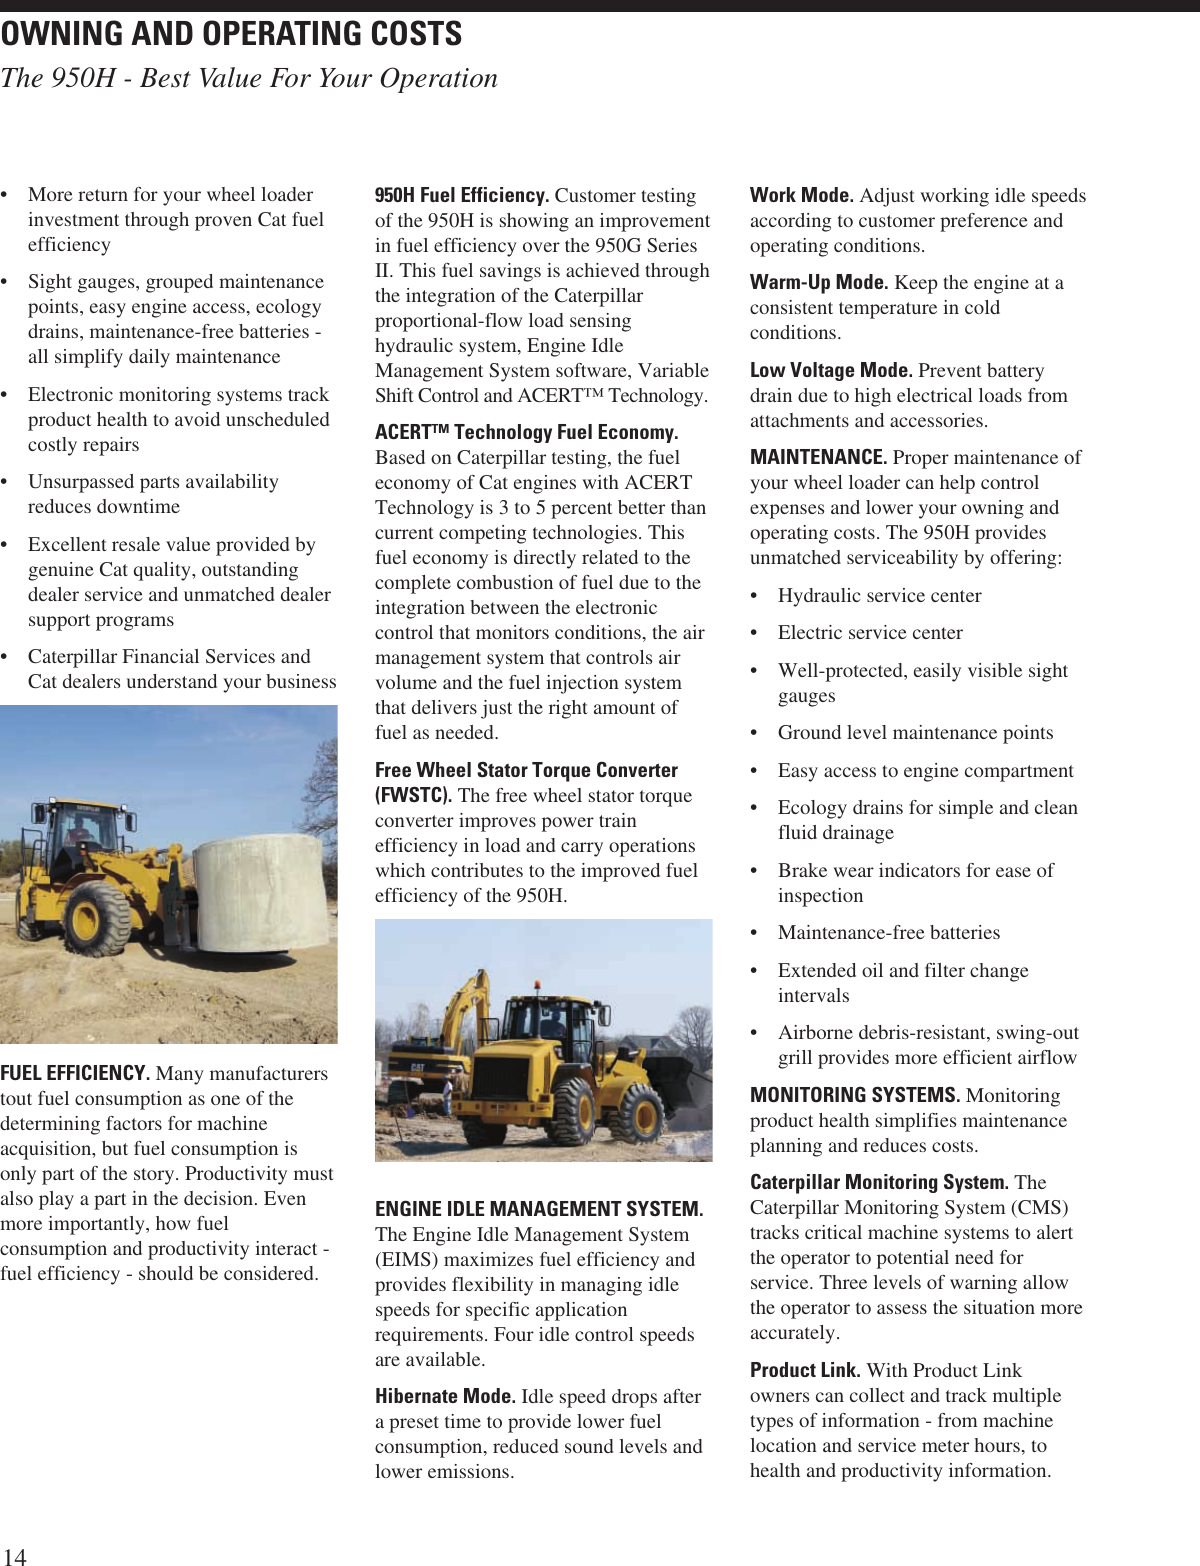 Cat 950H Users Manual Specalog For Wheel Loader, AEHQ5675 01